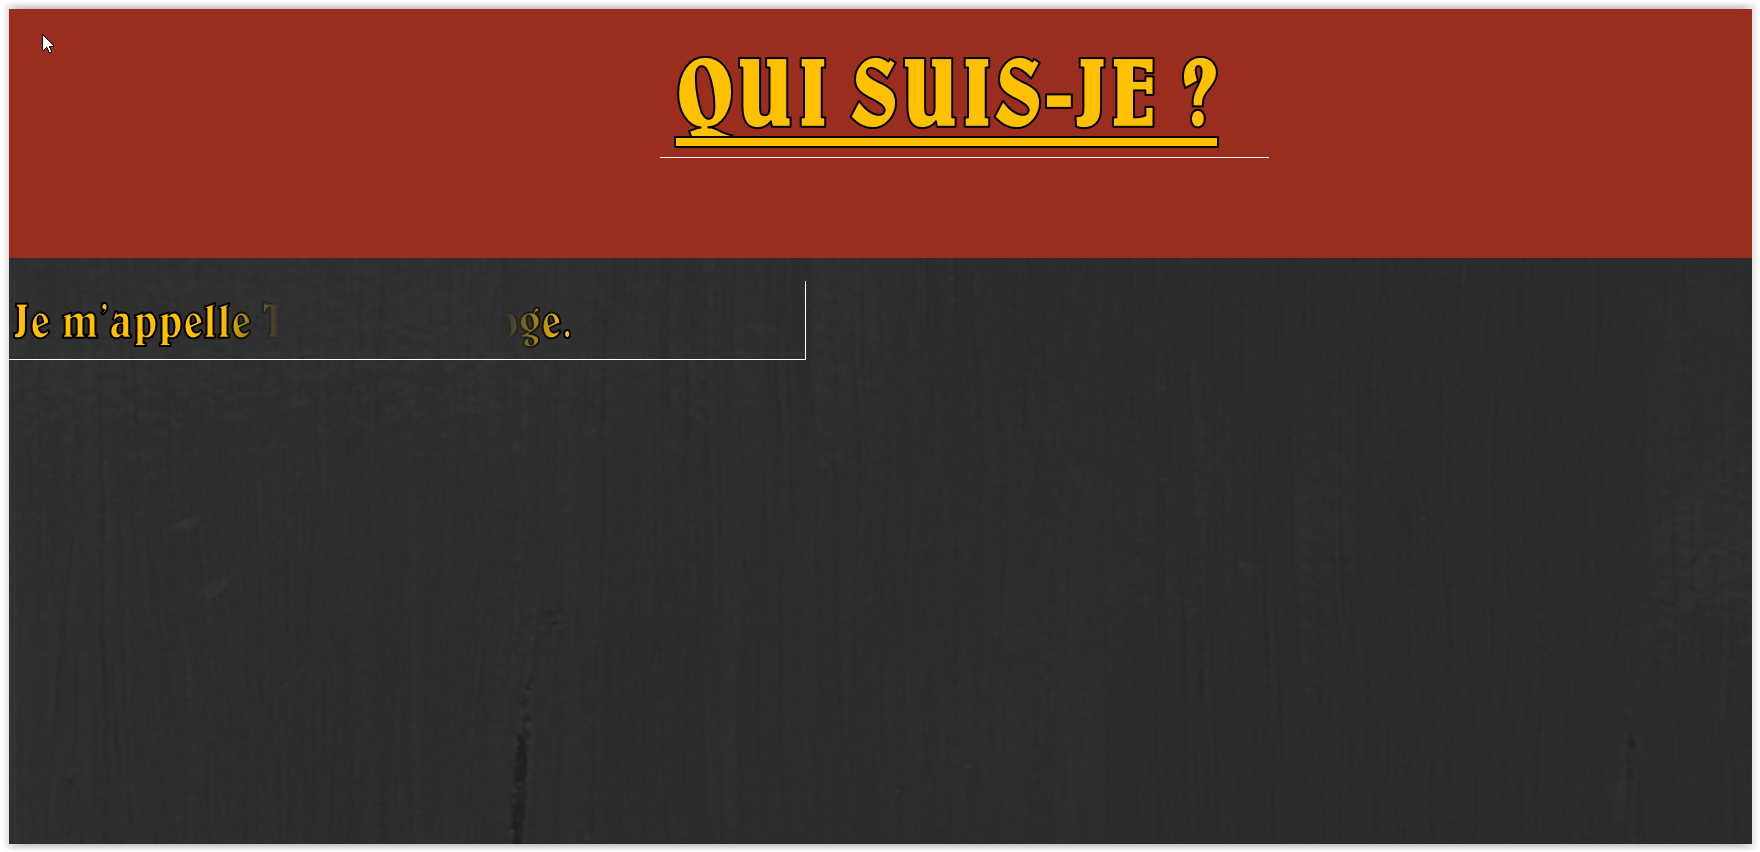 Nom : Screen Shot 03-24-17 at 11.17 AM.PNG